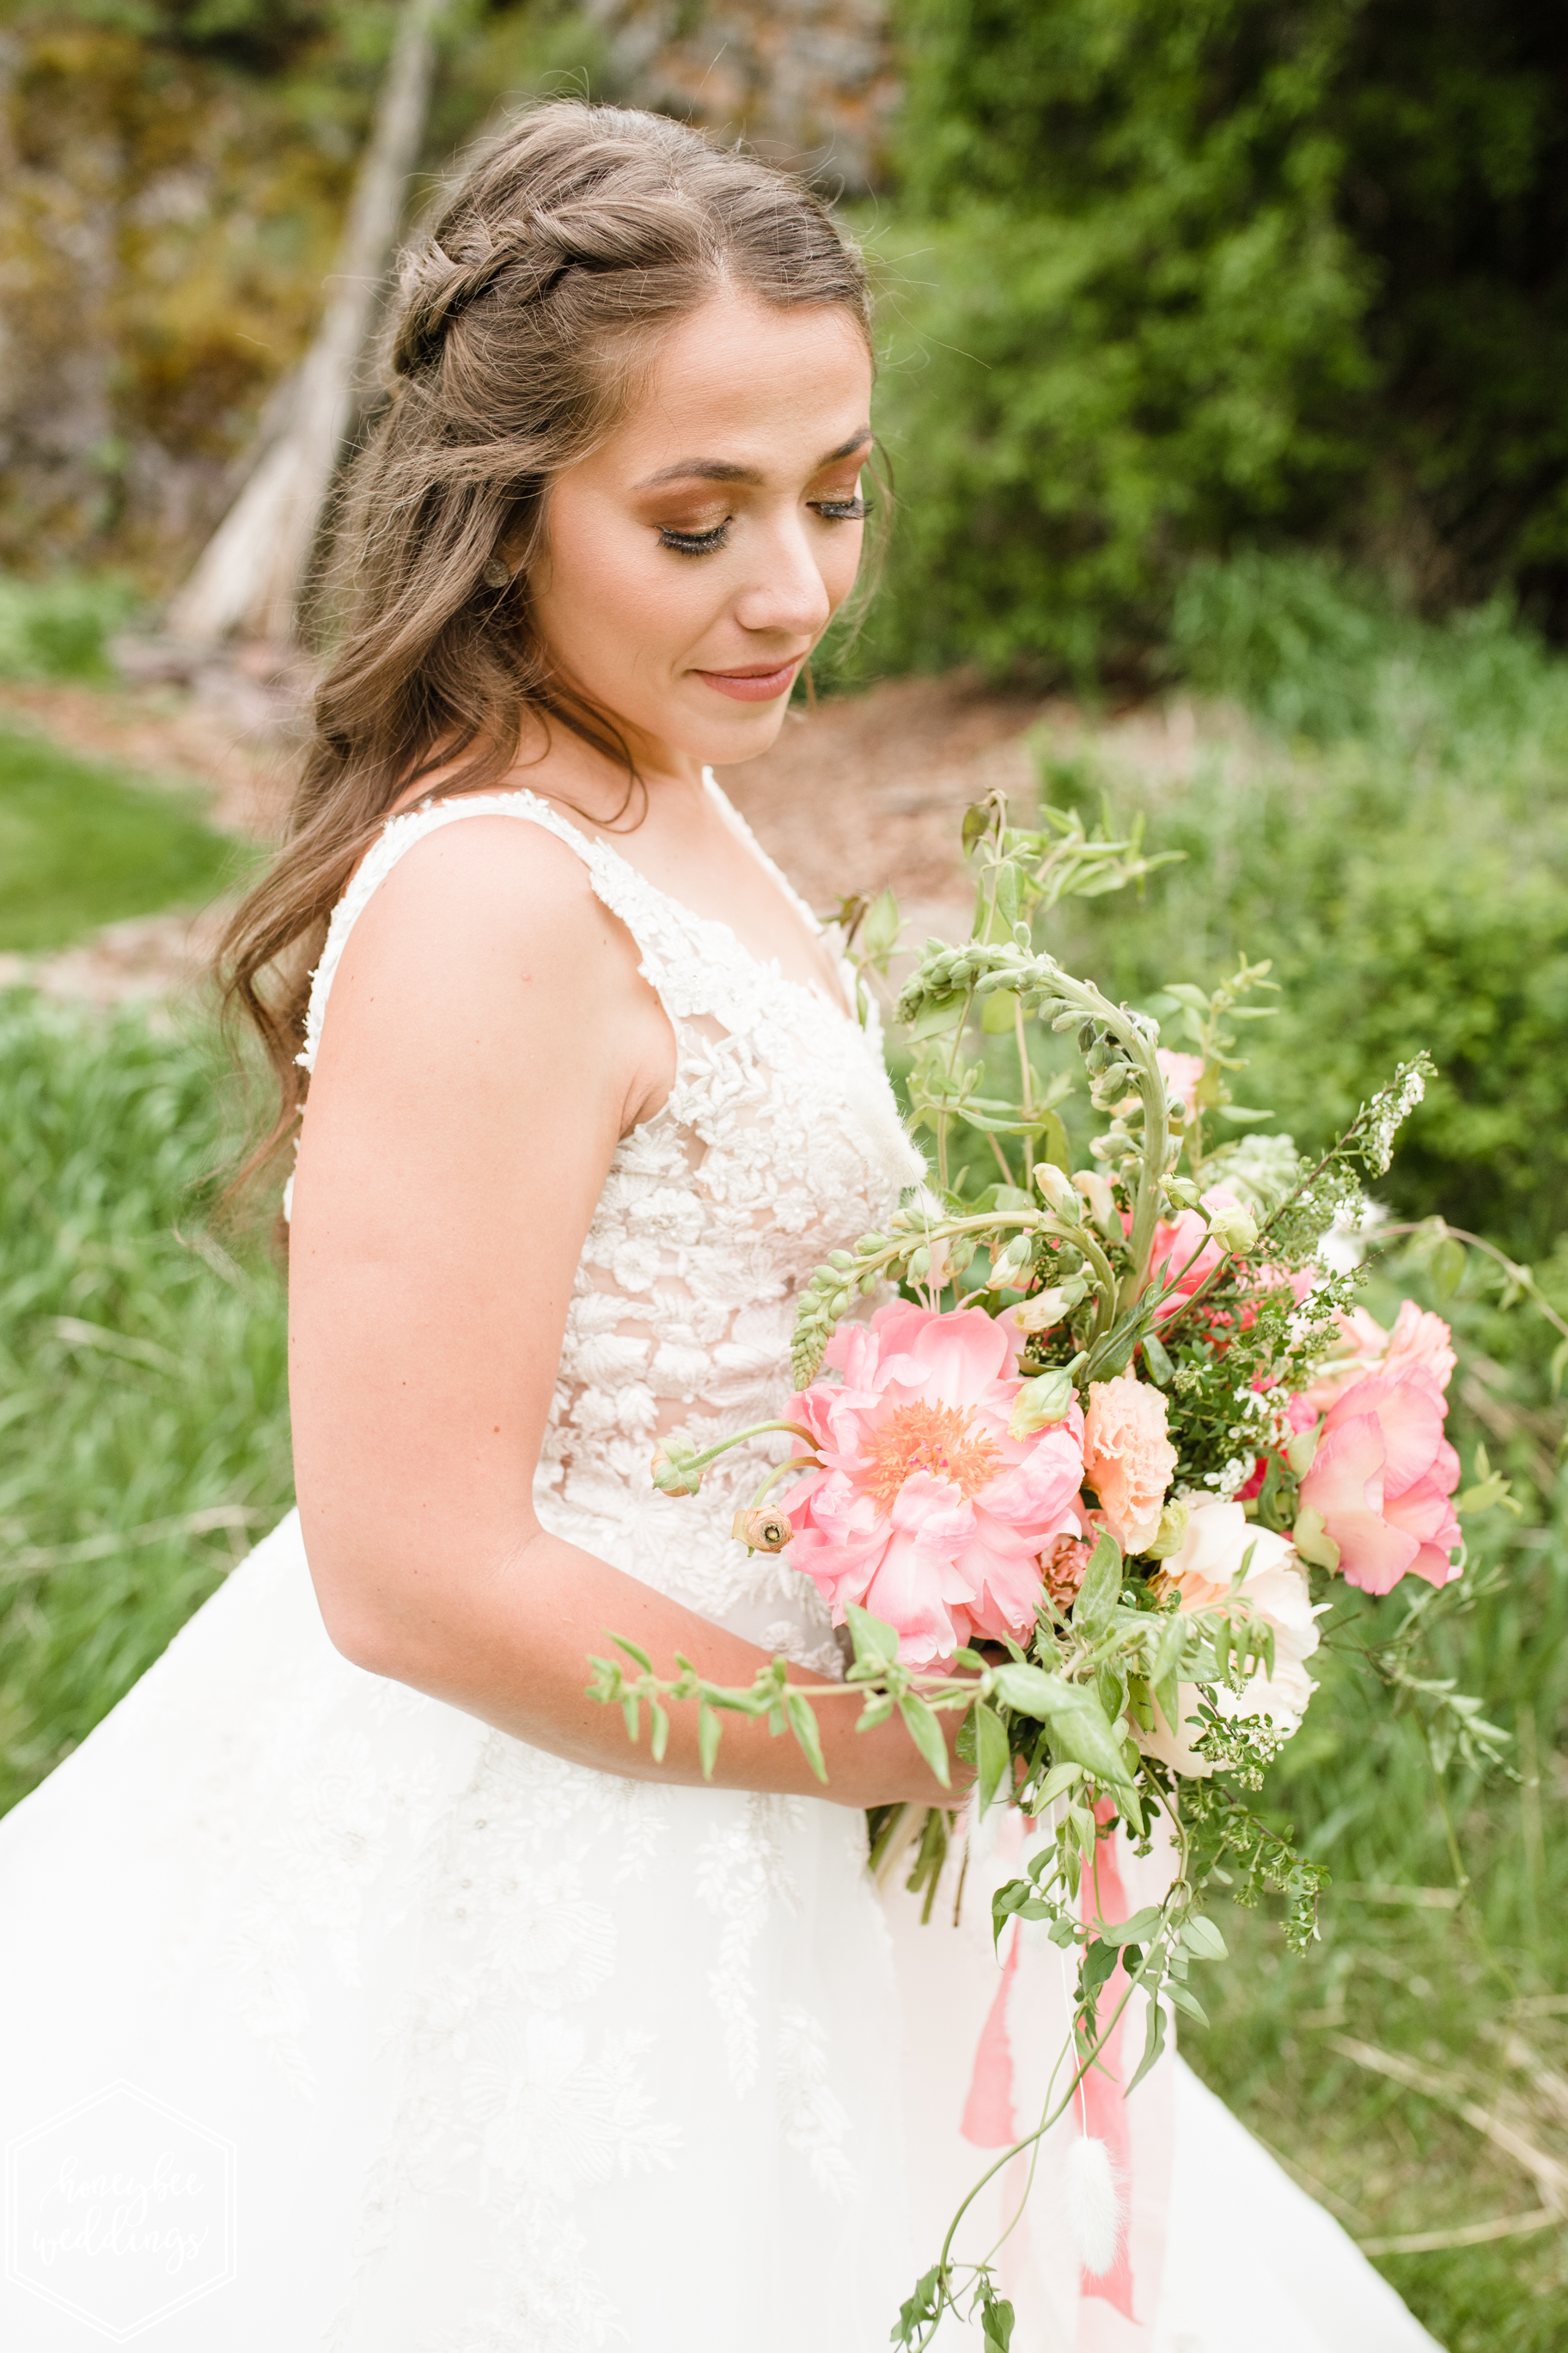 118Coral Mountain Wedding at White Raven_Honeybee Weddings_May 23, 2019-373.jpg